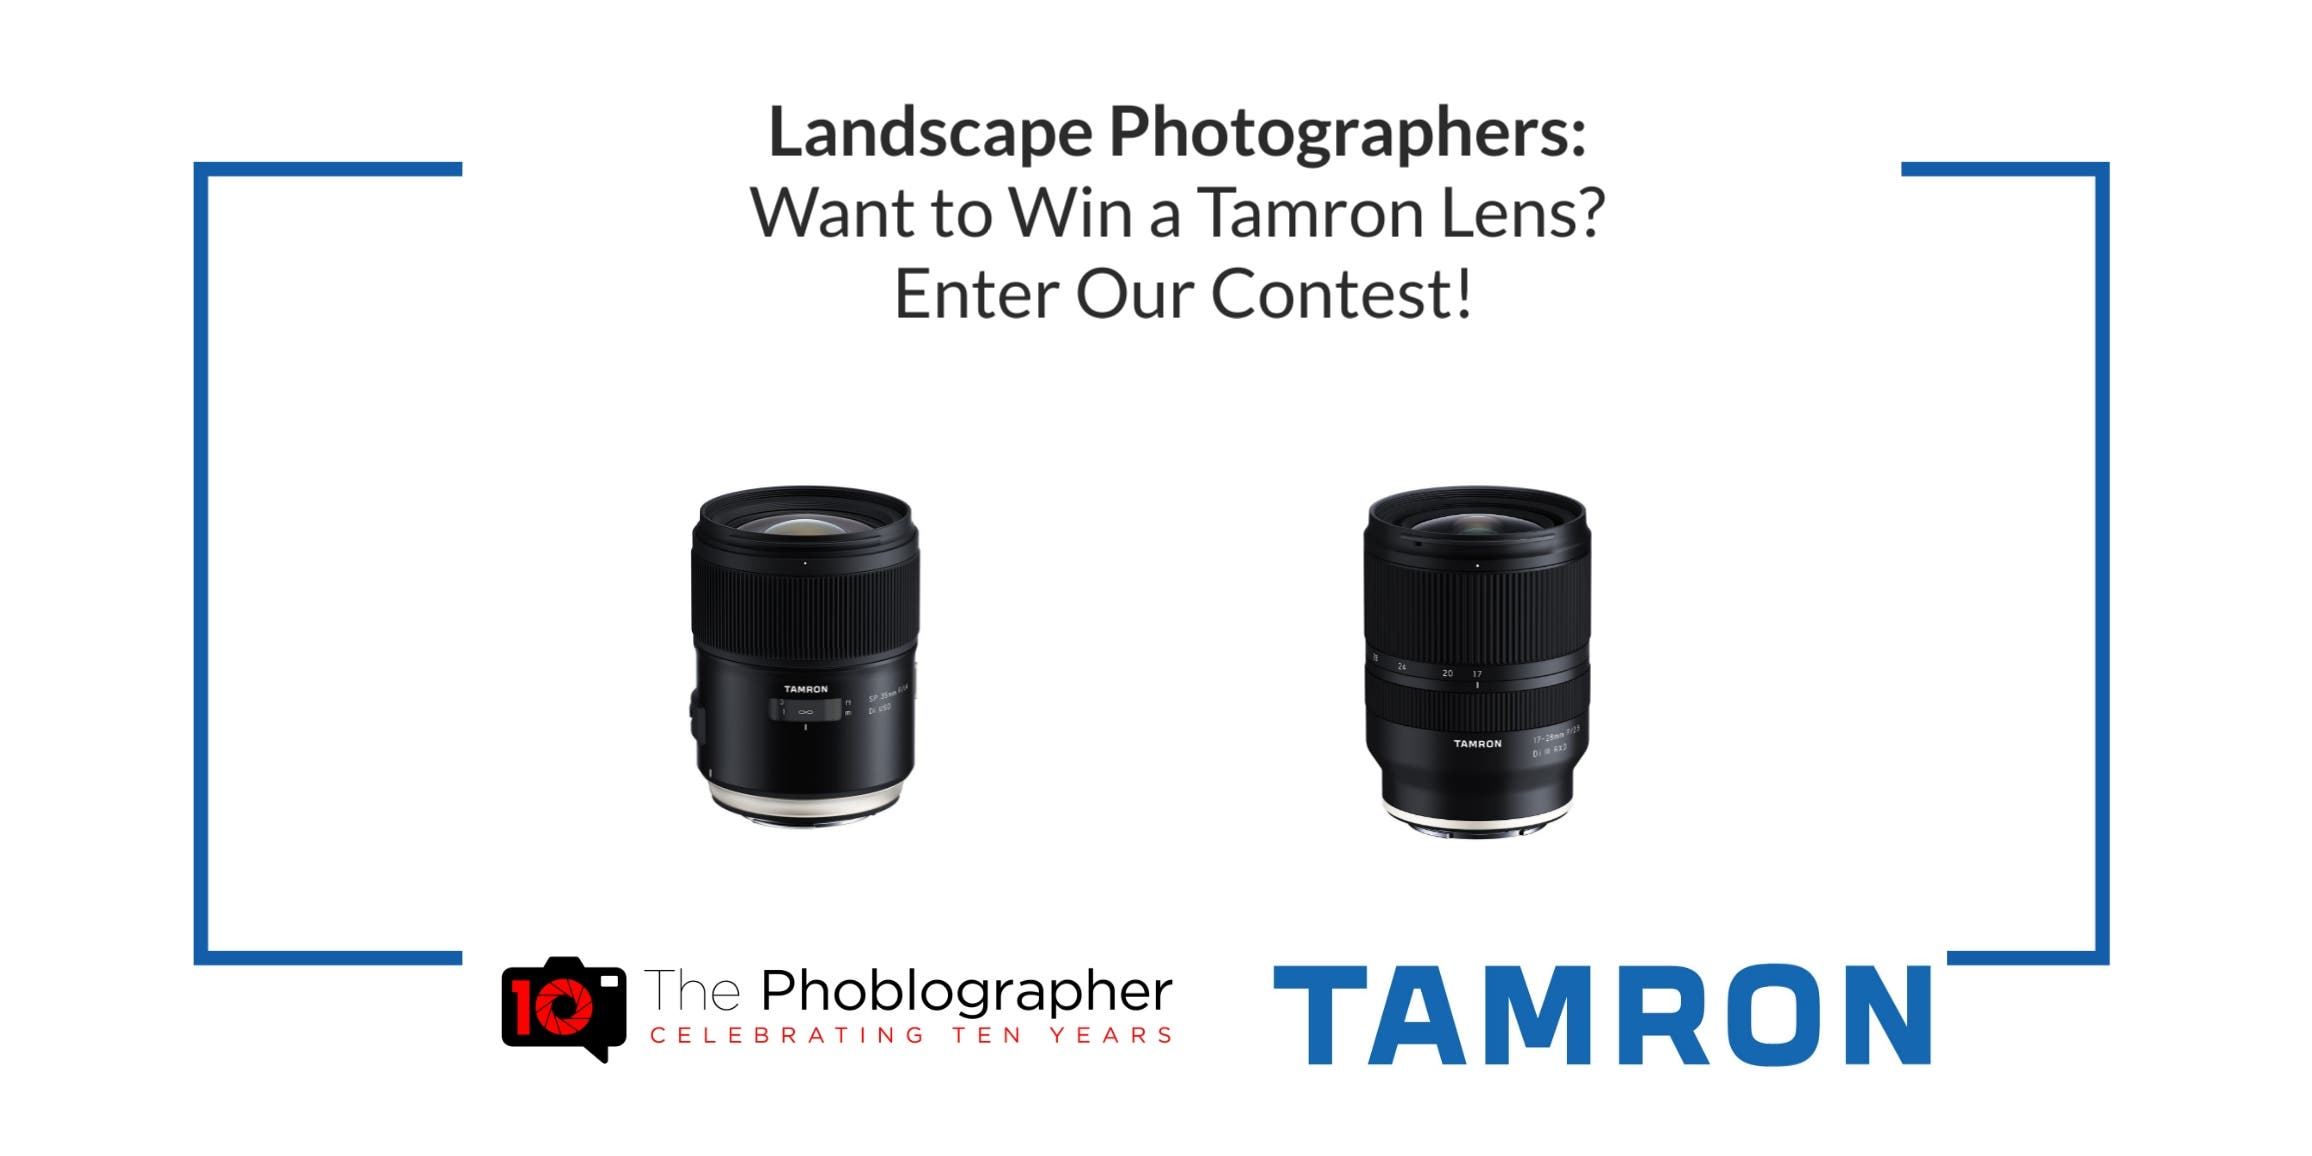 The Winner of Our Landscape Photography Contest Gets a Tamron Lens!